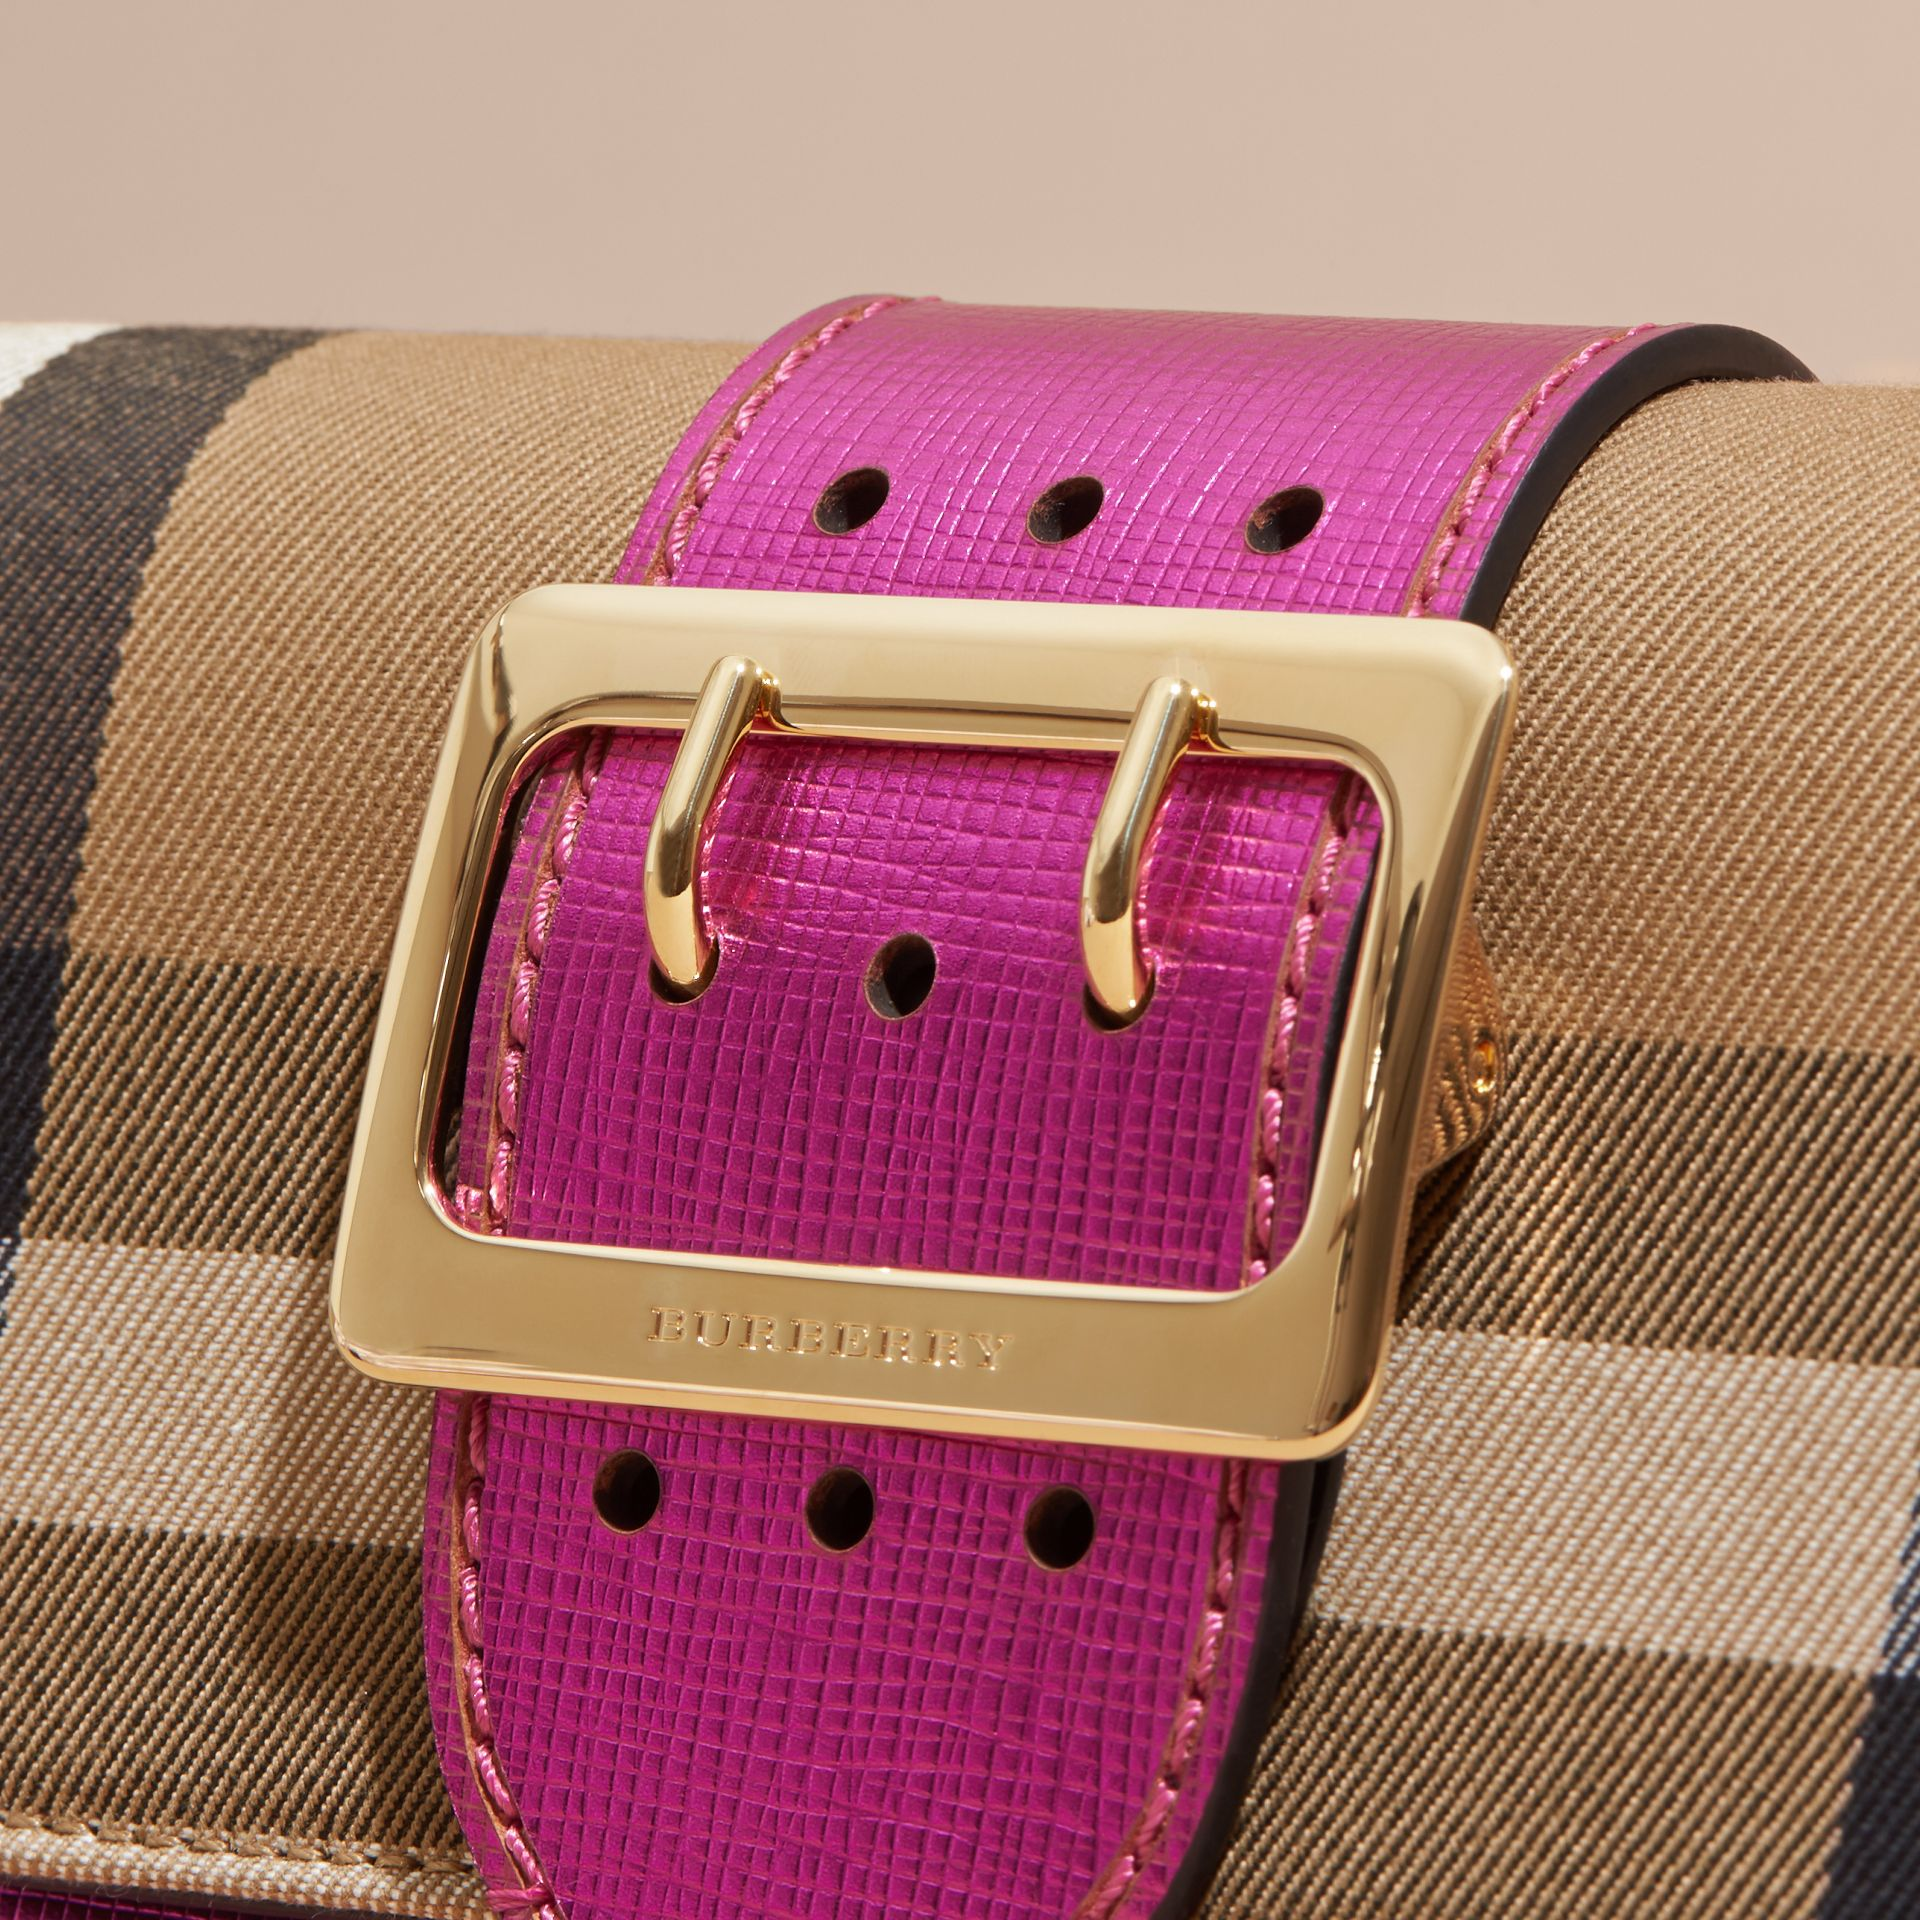 Borsa The Buckle piccola con motivo House check e pelle Rosa Intenso - immagine della galleria 7